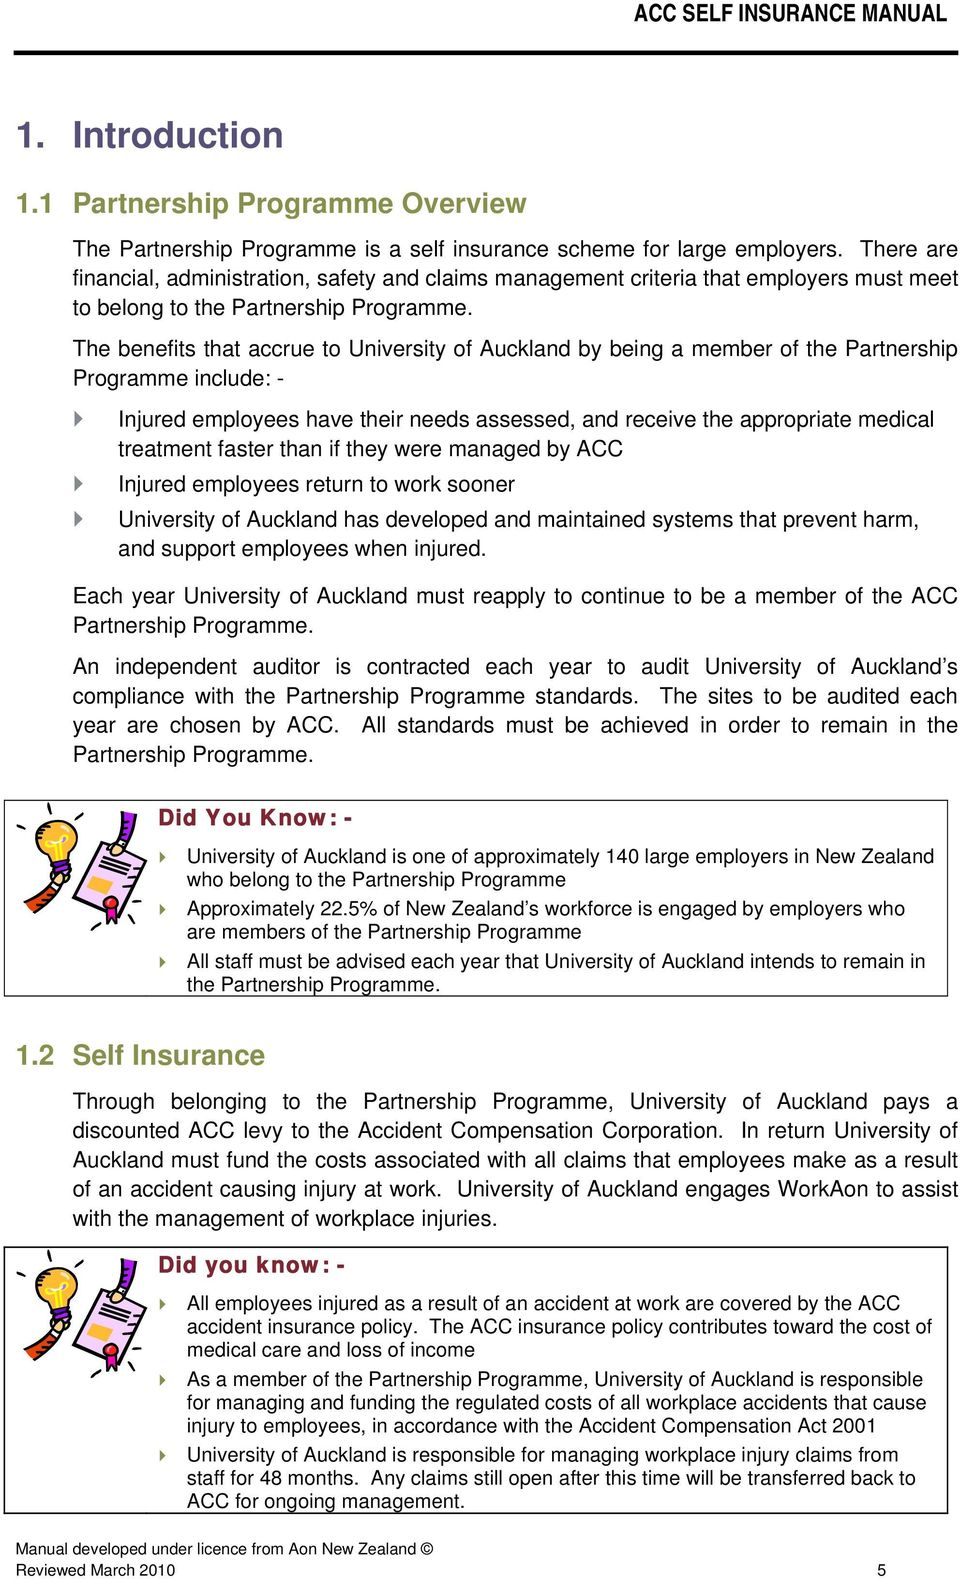 The benefits that accrue to University of Auckland by being a member of the Partnership Programme include: - Injured employees have their needs assessed, and receive the appropriate medical treatment